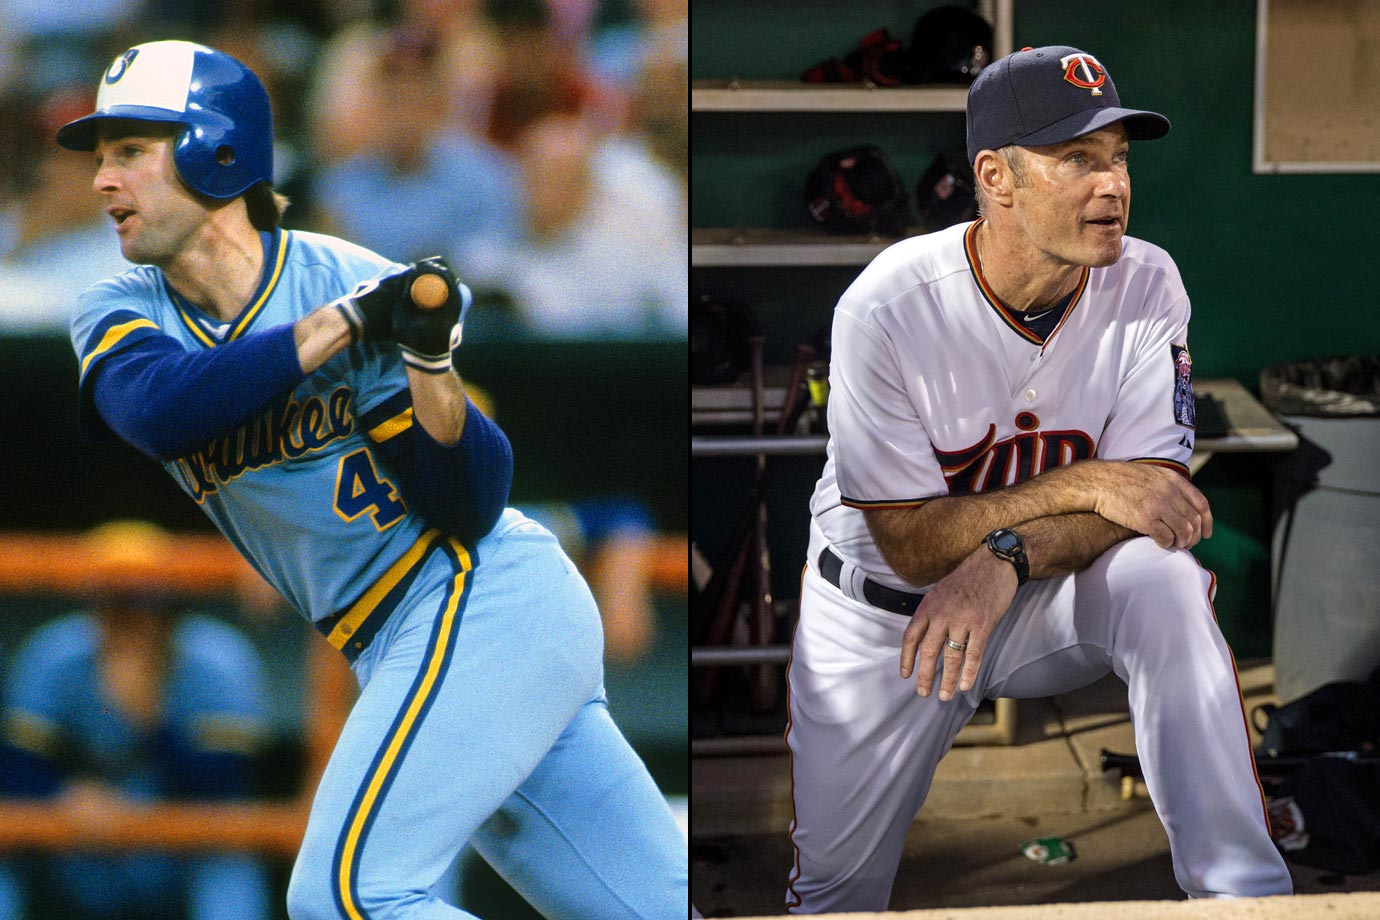 The Hall of Fame first baseman played 21 years in the major leagues and ranks ninth all-time in hits with 3,319. Molitor played 15 seasons with the Brewers, followed by three with the Blue Jays, with whom he won the World Series in 1993. Molitor played his final three seasons with the Twins, with whom he got his 3,000th career hit. The Minnesota native's first year as a manager comes in 2015 with the Twins.